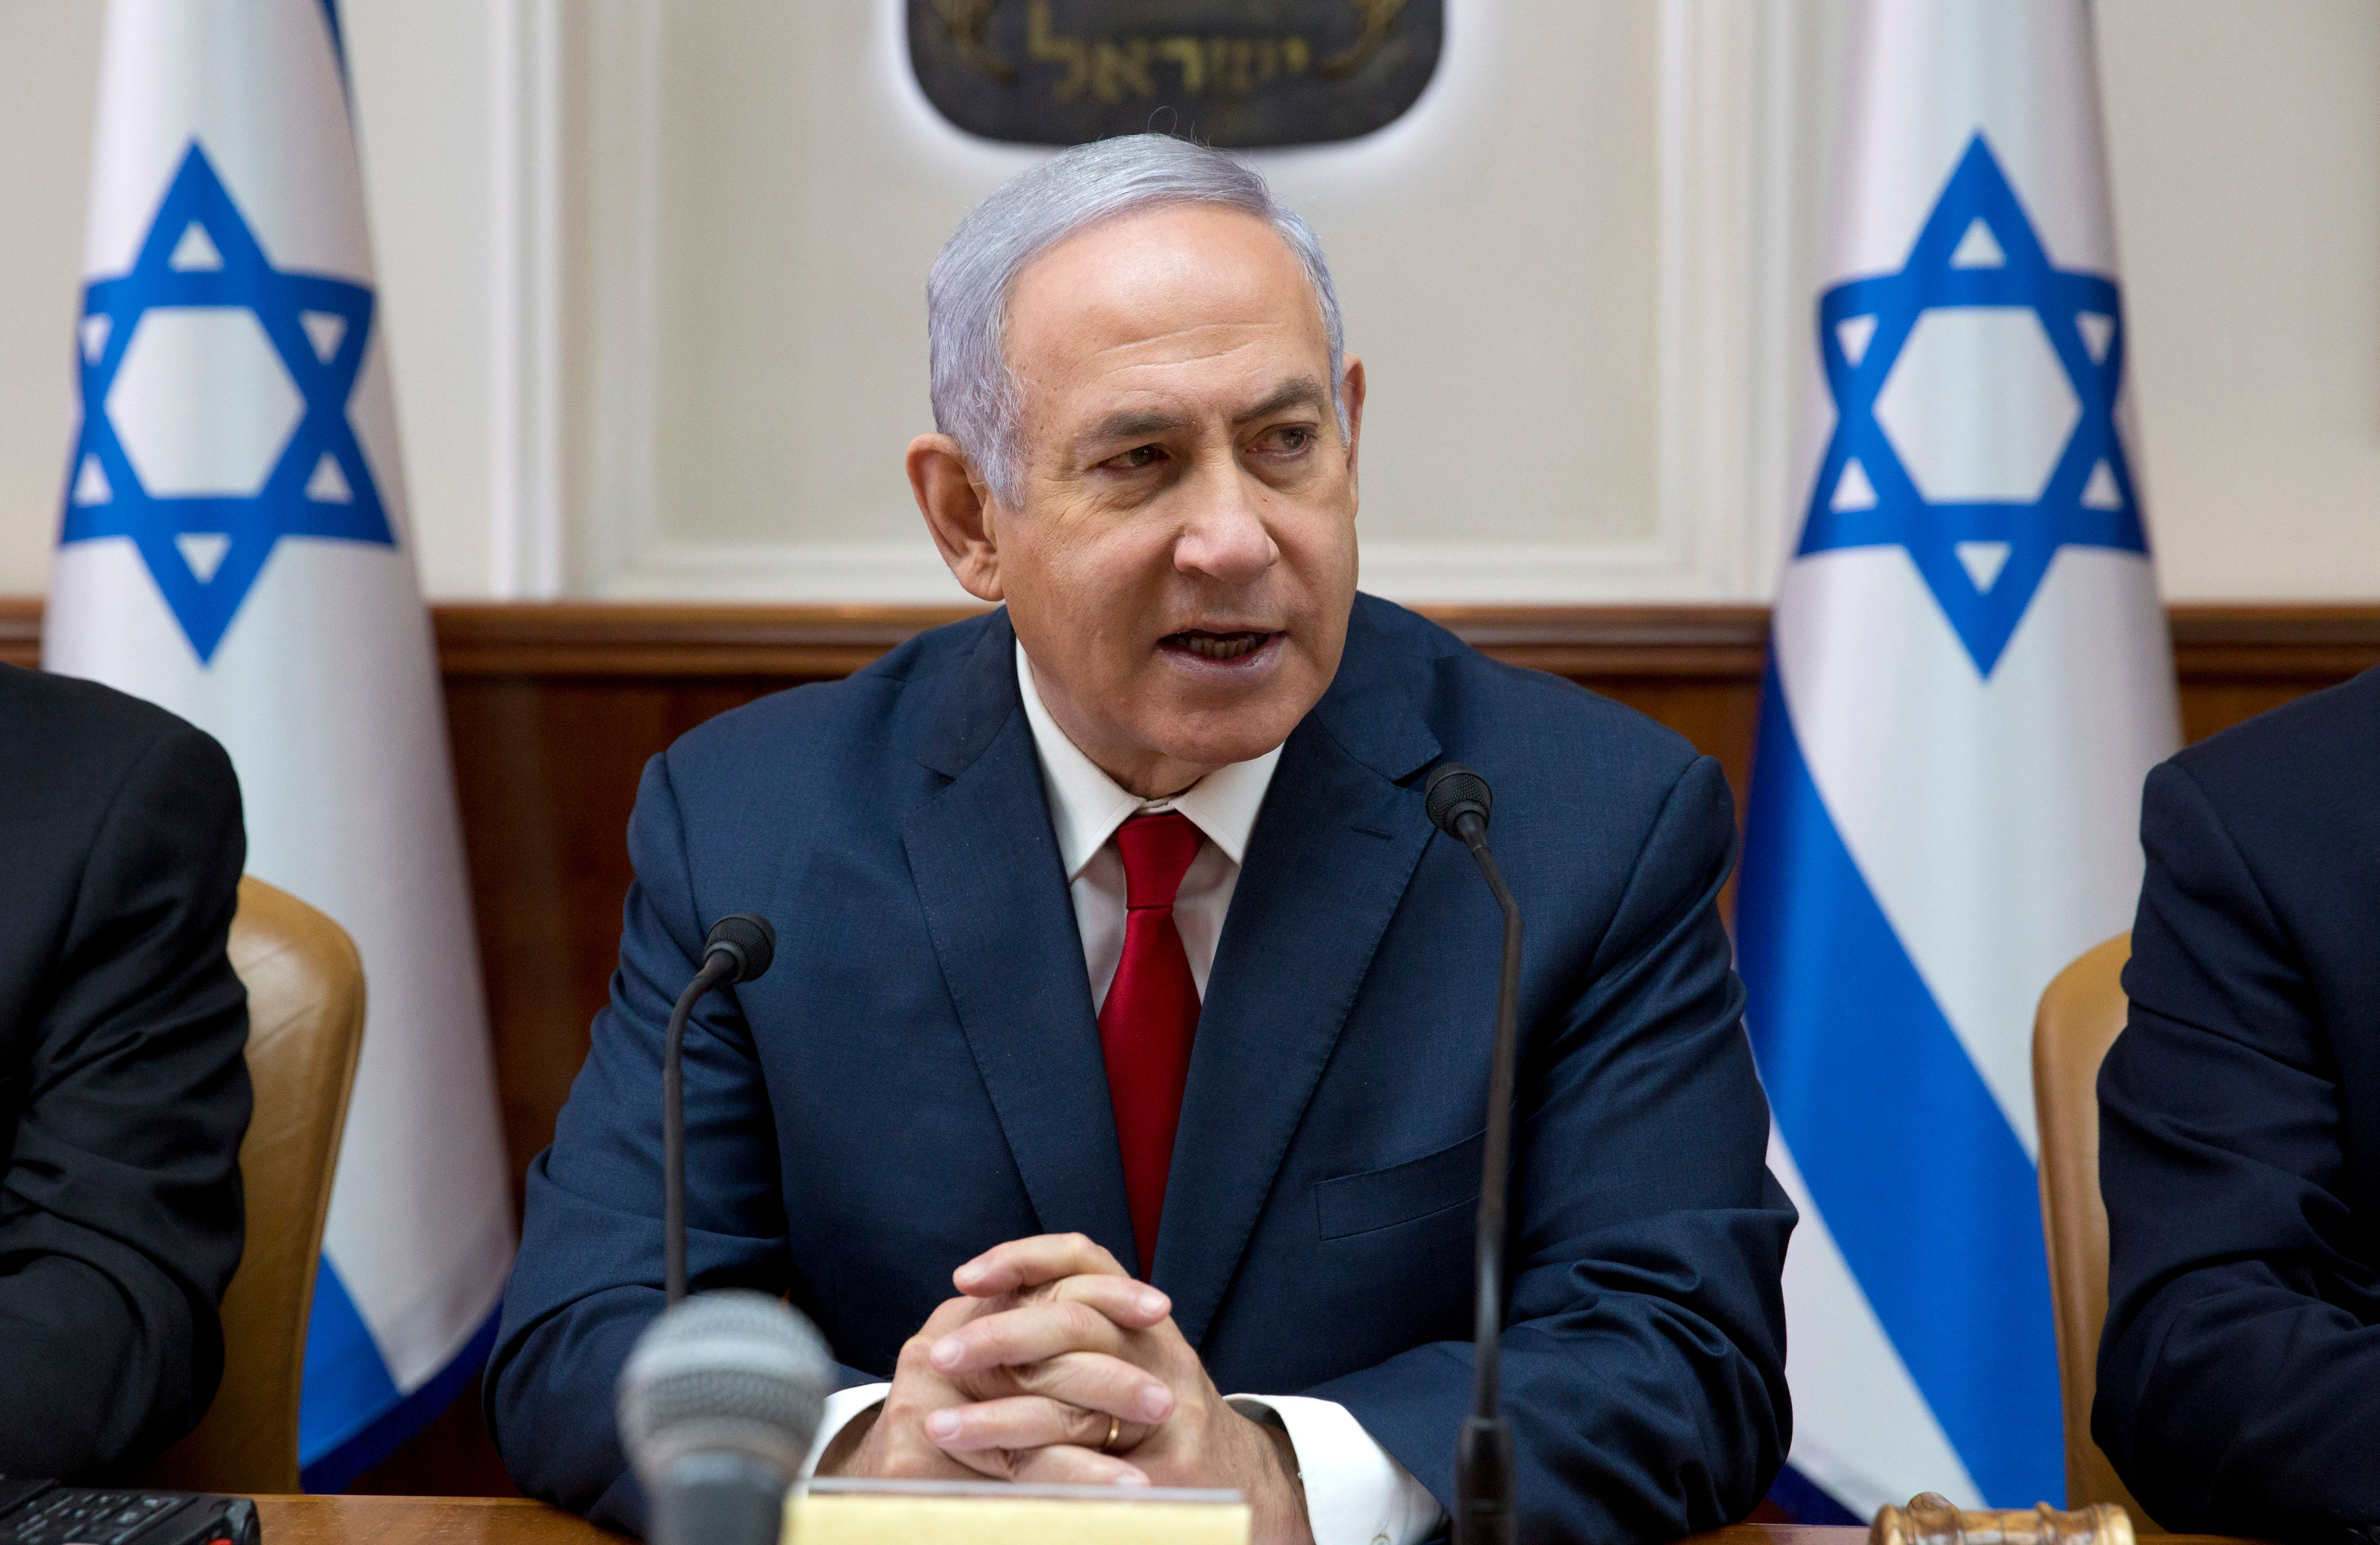 Israeli Prime Minister Benjamin Netanyahu attends the weekly cabinet meeting at the Prime Minister's office in Jerusalem on Feb. 17, 2019.